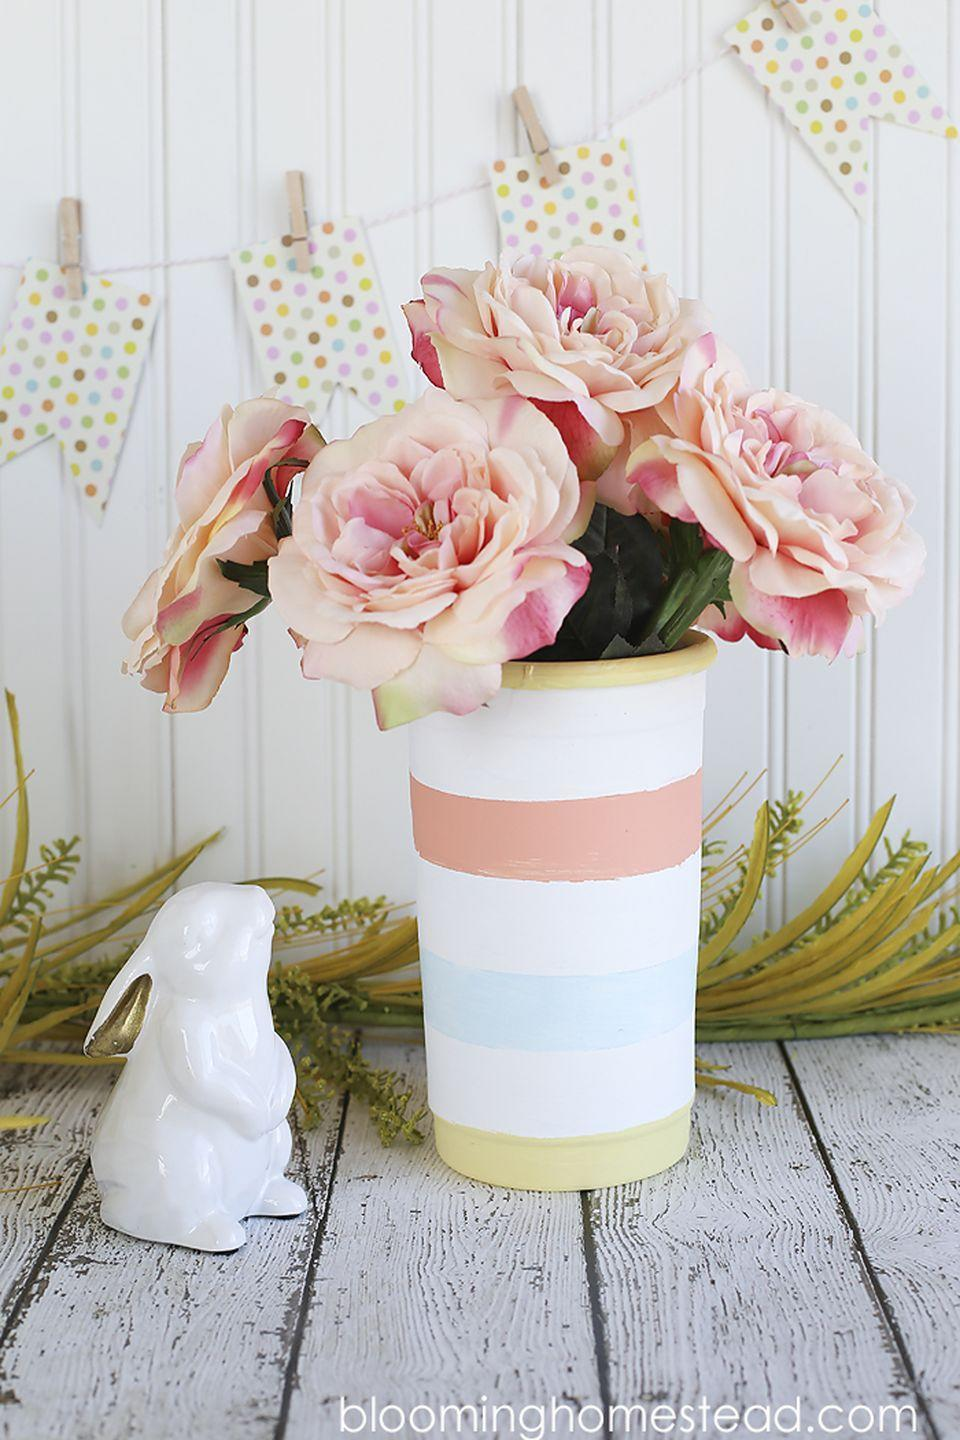 """<p>Kids can apply painter's tape in any design they want to make a pretty painted vase for Mom.</p><p><strong>Get the tutorial at <a href=""""http://www.bloominghomestead.com/2015/05/easy-striped-vase.html"""" rel=""""nofollow noopener"""" target=""""_blank"""" data-ylk=""""slk:Blooming Homestead"""" class=""""link rapid-noclick-resp"""">Blooming Homestead</a>.</strong></p><p><strong>What you'll need: </strong><em>terra cotta pot ($10, <a href=""""https://www.amazon.com/Fiskars-Inch-TerraPot-Planter-Color/dp/B000IF7PN2"""" rel=""""nofollow noopener"""" target=""""_blank"""" data-ylk=""""slk:amazon.com"""" class=""""link rapid-noclick-resp"""">amazon.com</a>); painter's tape ($4, <a href=""""https://www.amazon.com/Intertape-Polymer-Group-PMD24-Designer/dp/B00F36XKCG"""" rel=""""nofollow noopener"""" target=""""_blank"""" data-ylk=""""slk:amazon.com"""" class=""""link rapid-noclick-resp"""">amazon.com</a>)</em></p>"""